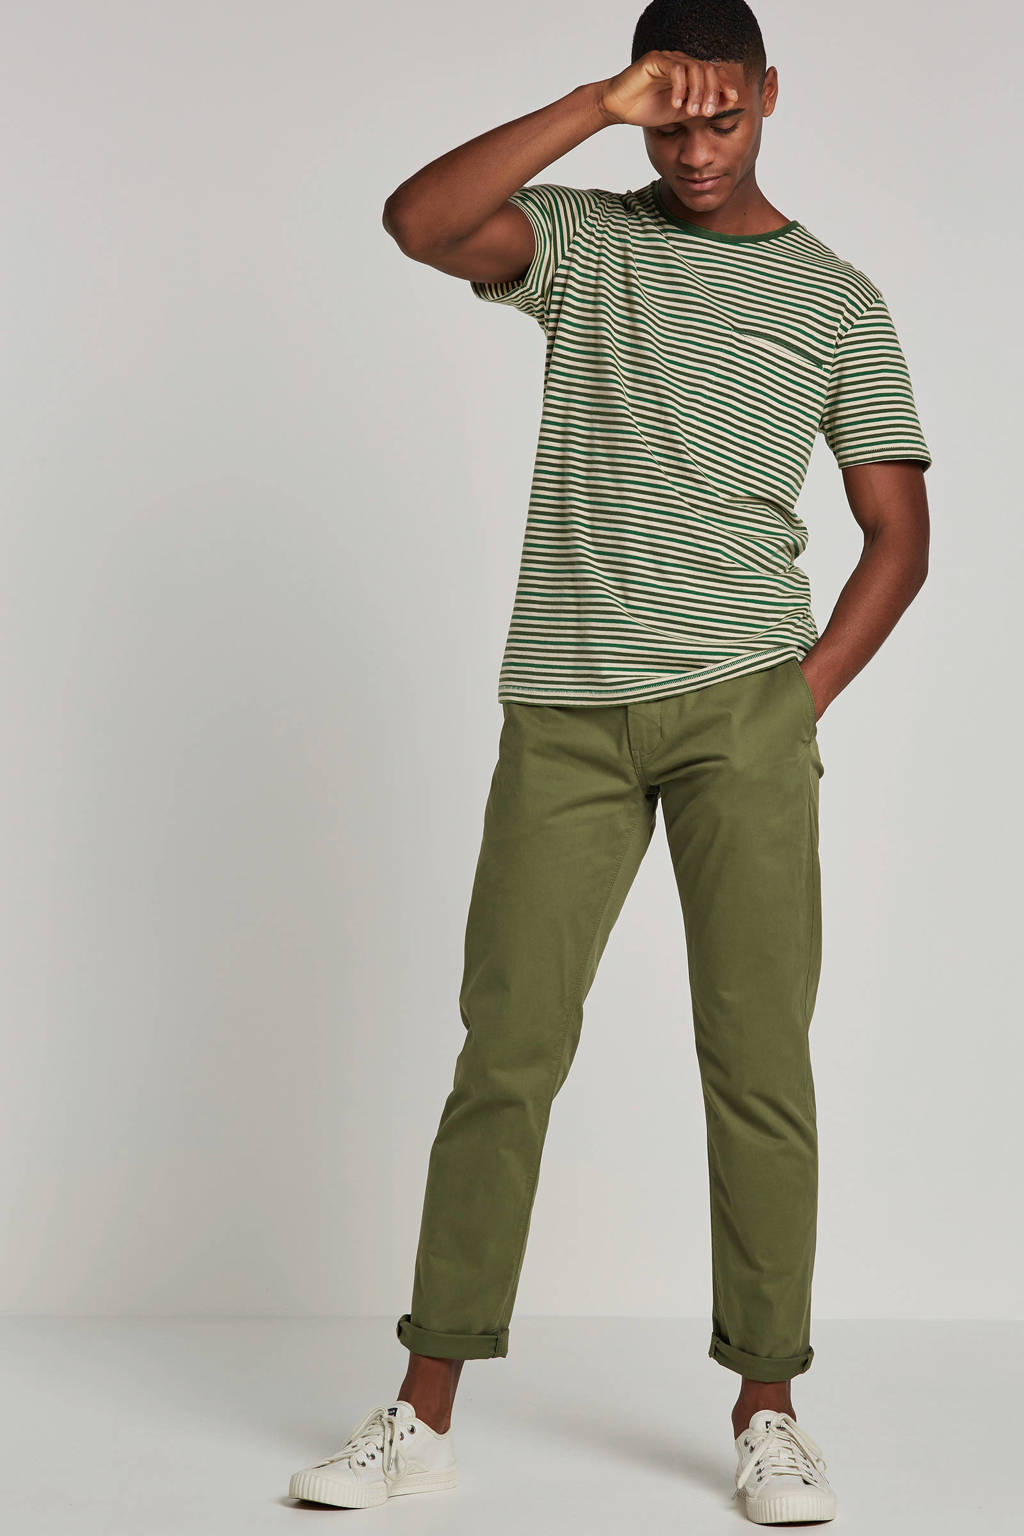 SELECTED HOMME T-shirt, Groen/wit